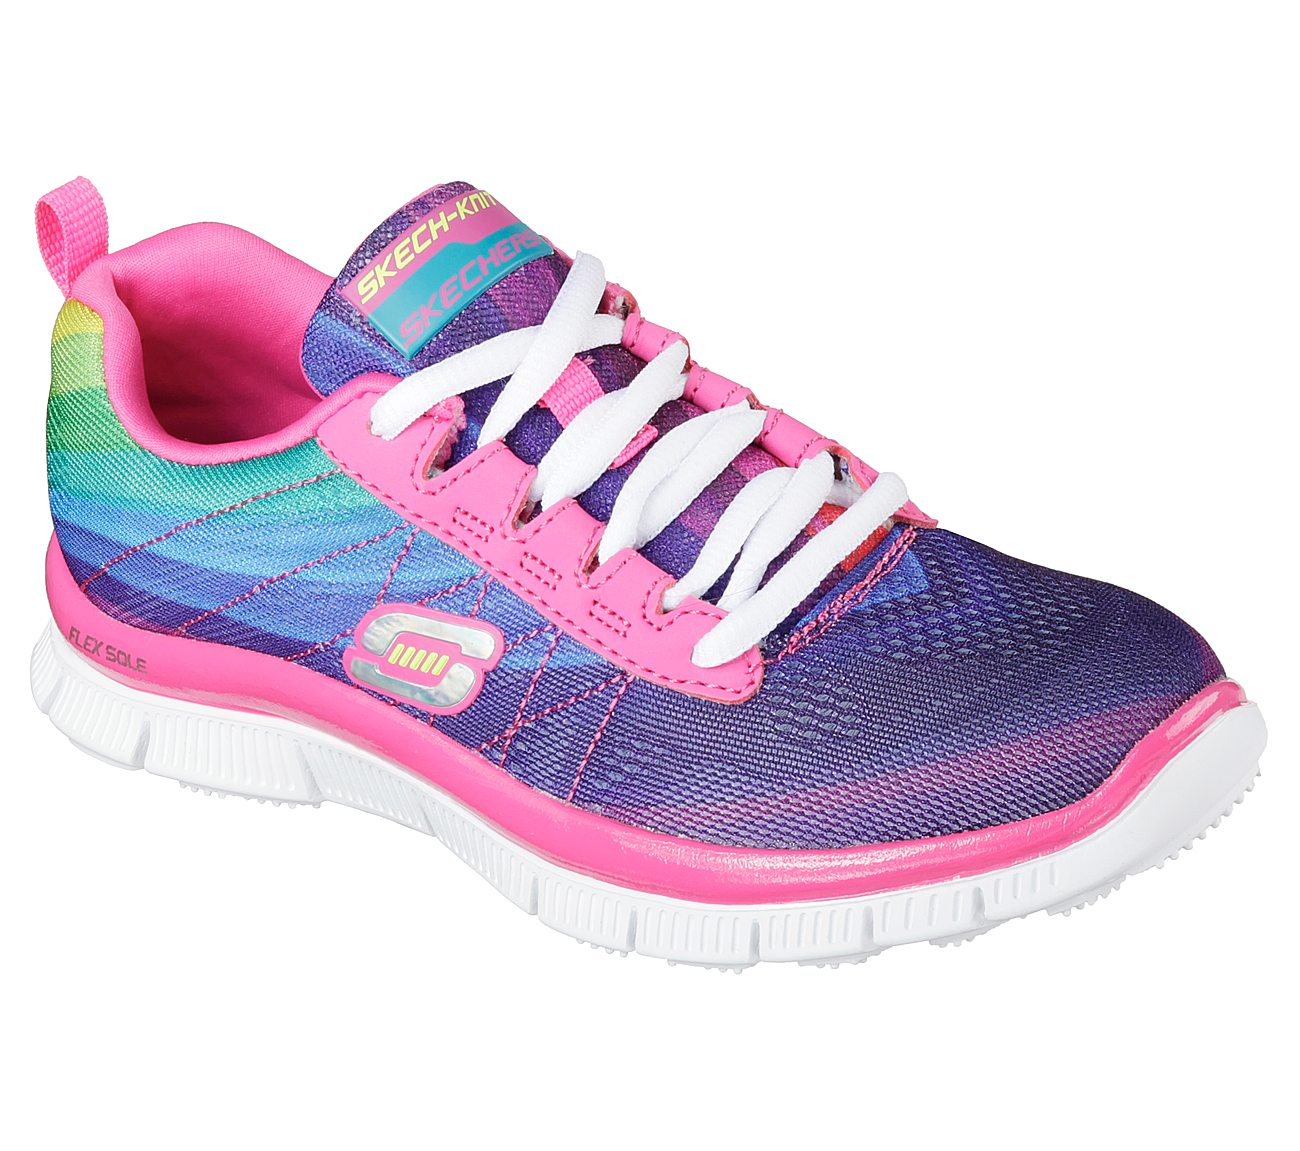 Buy Skechers Skech Appeal Pretty Please Sport Shoes Only